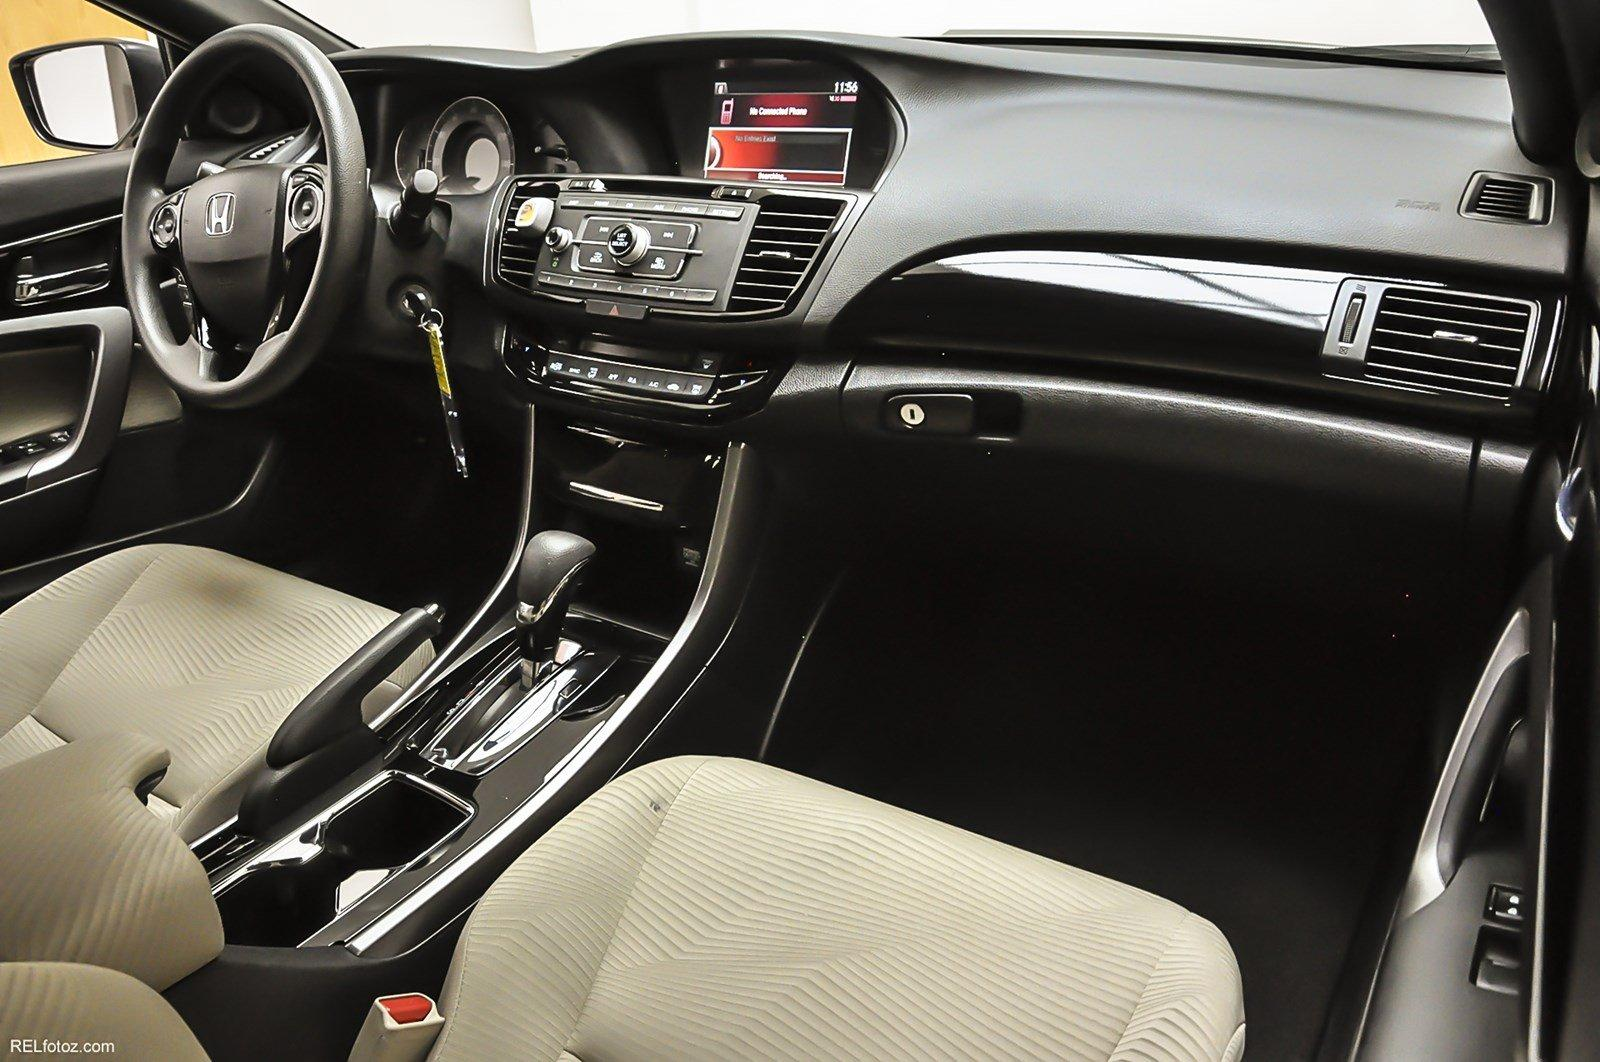 Honda Accord: Using the Paddle Shifters in the S position (Sequential Shift Mode)